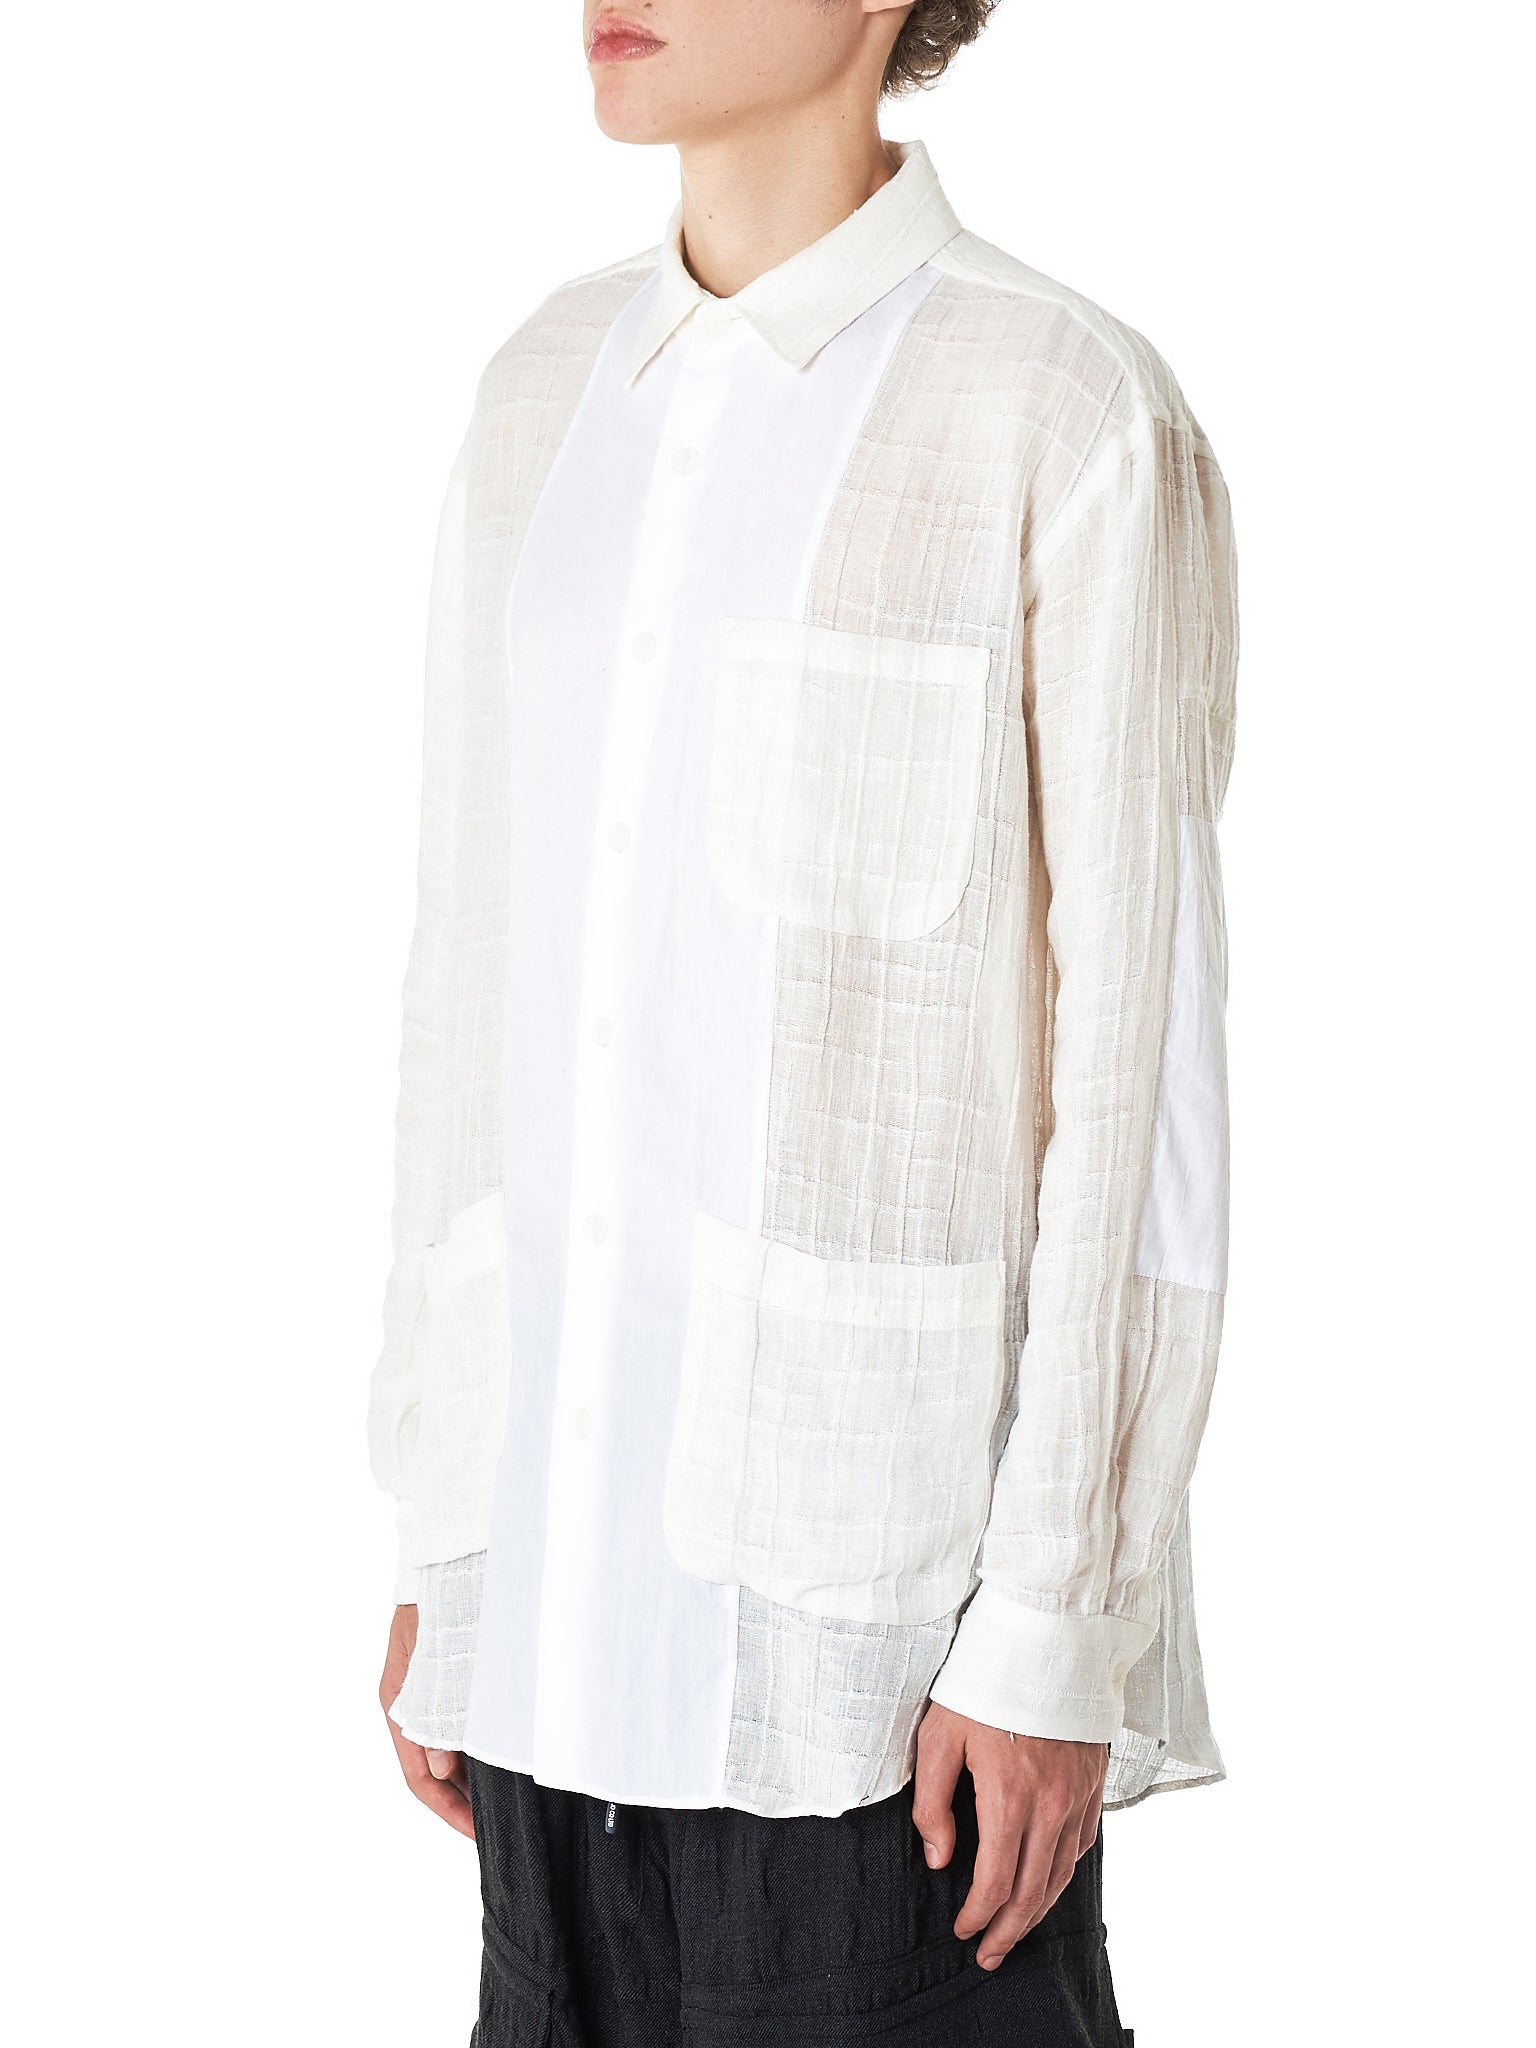 Julien David Shirt - Hlorenzo Side